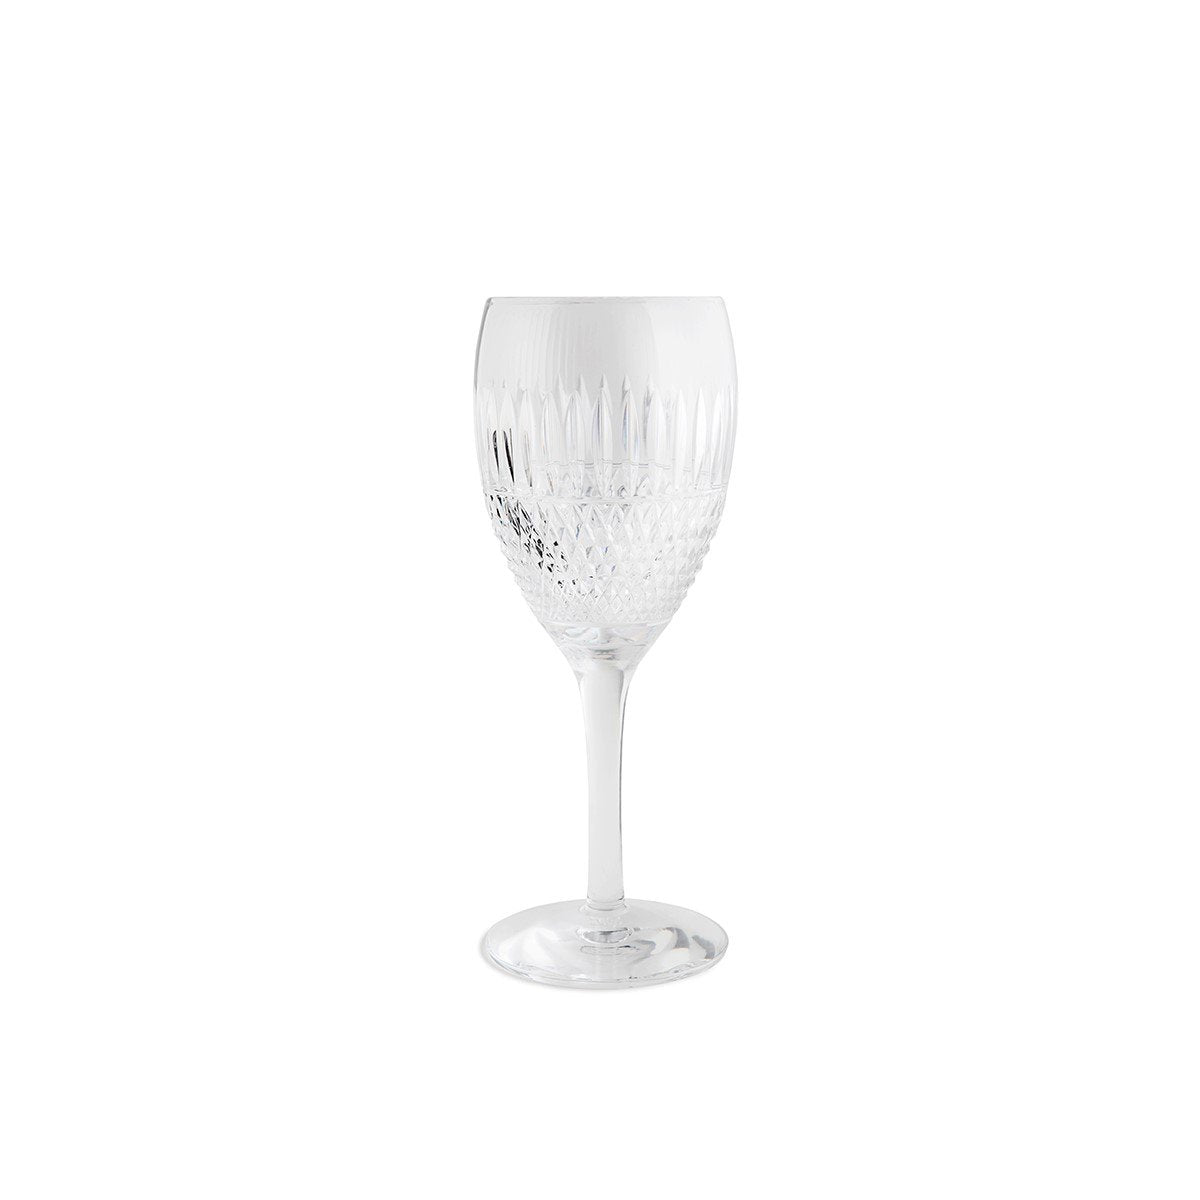 Cumbria Crystal and H&I Thistle Cut Port Glass-Hamilton & Inches